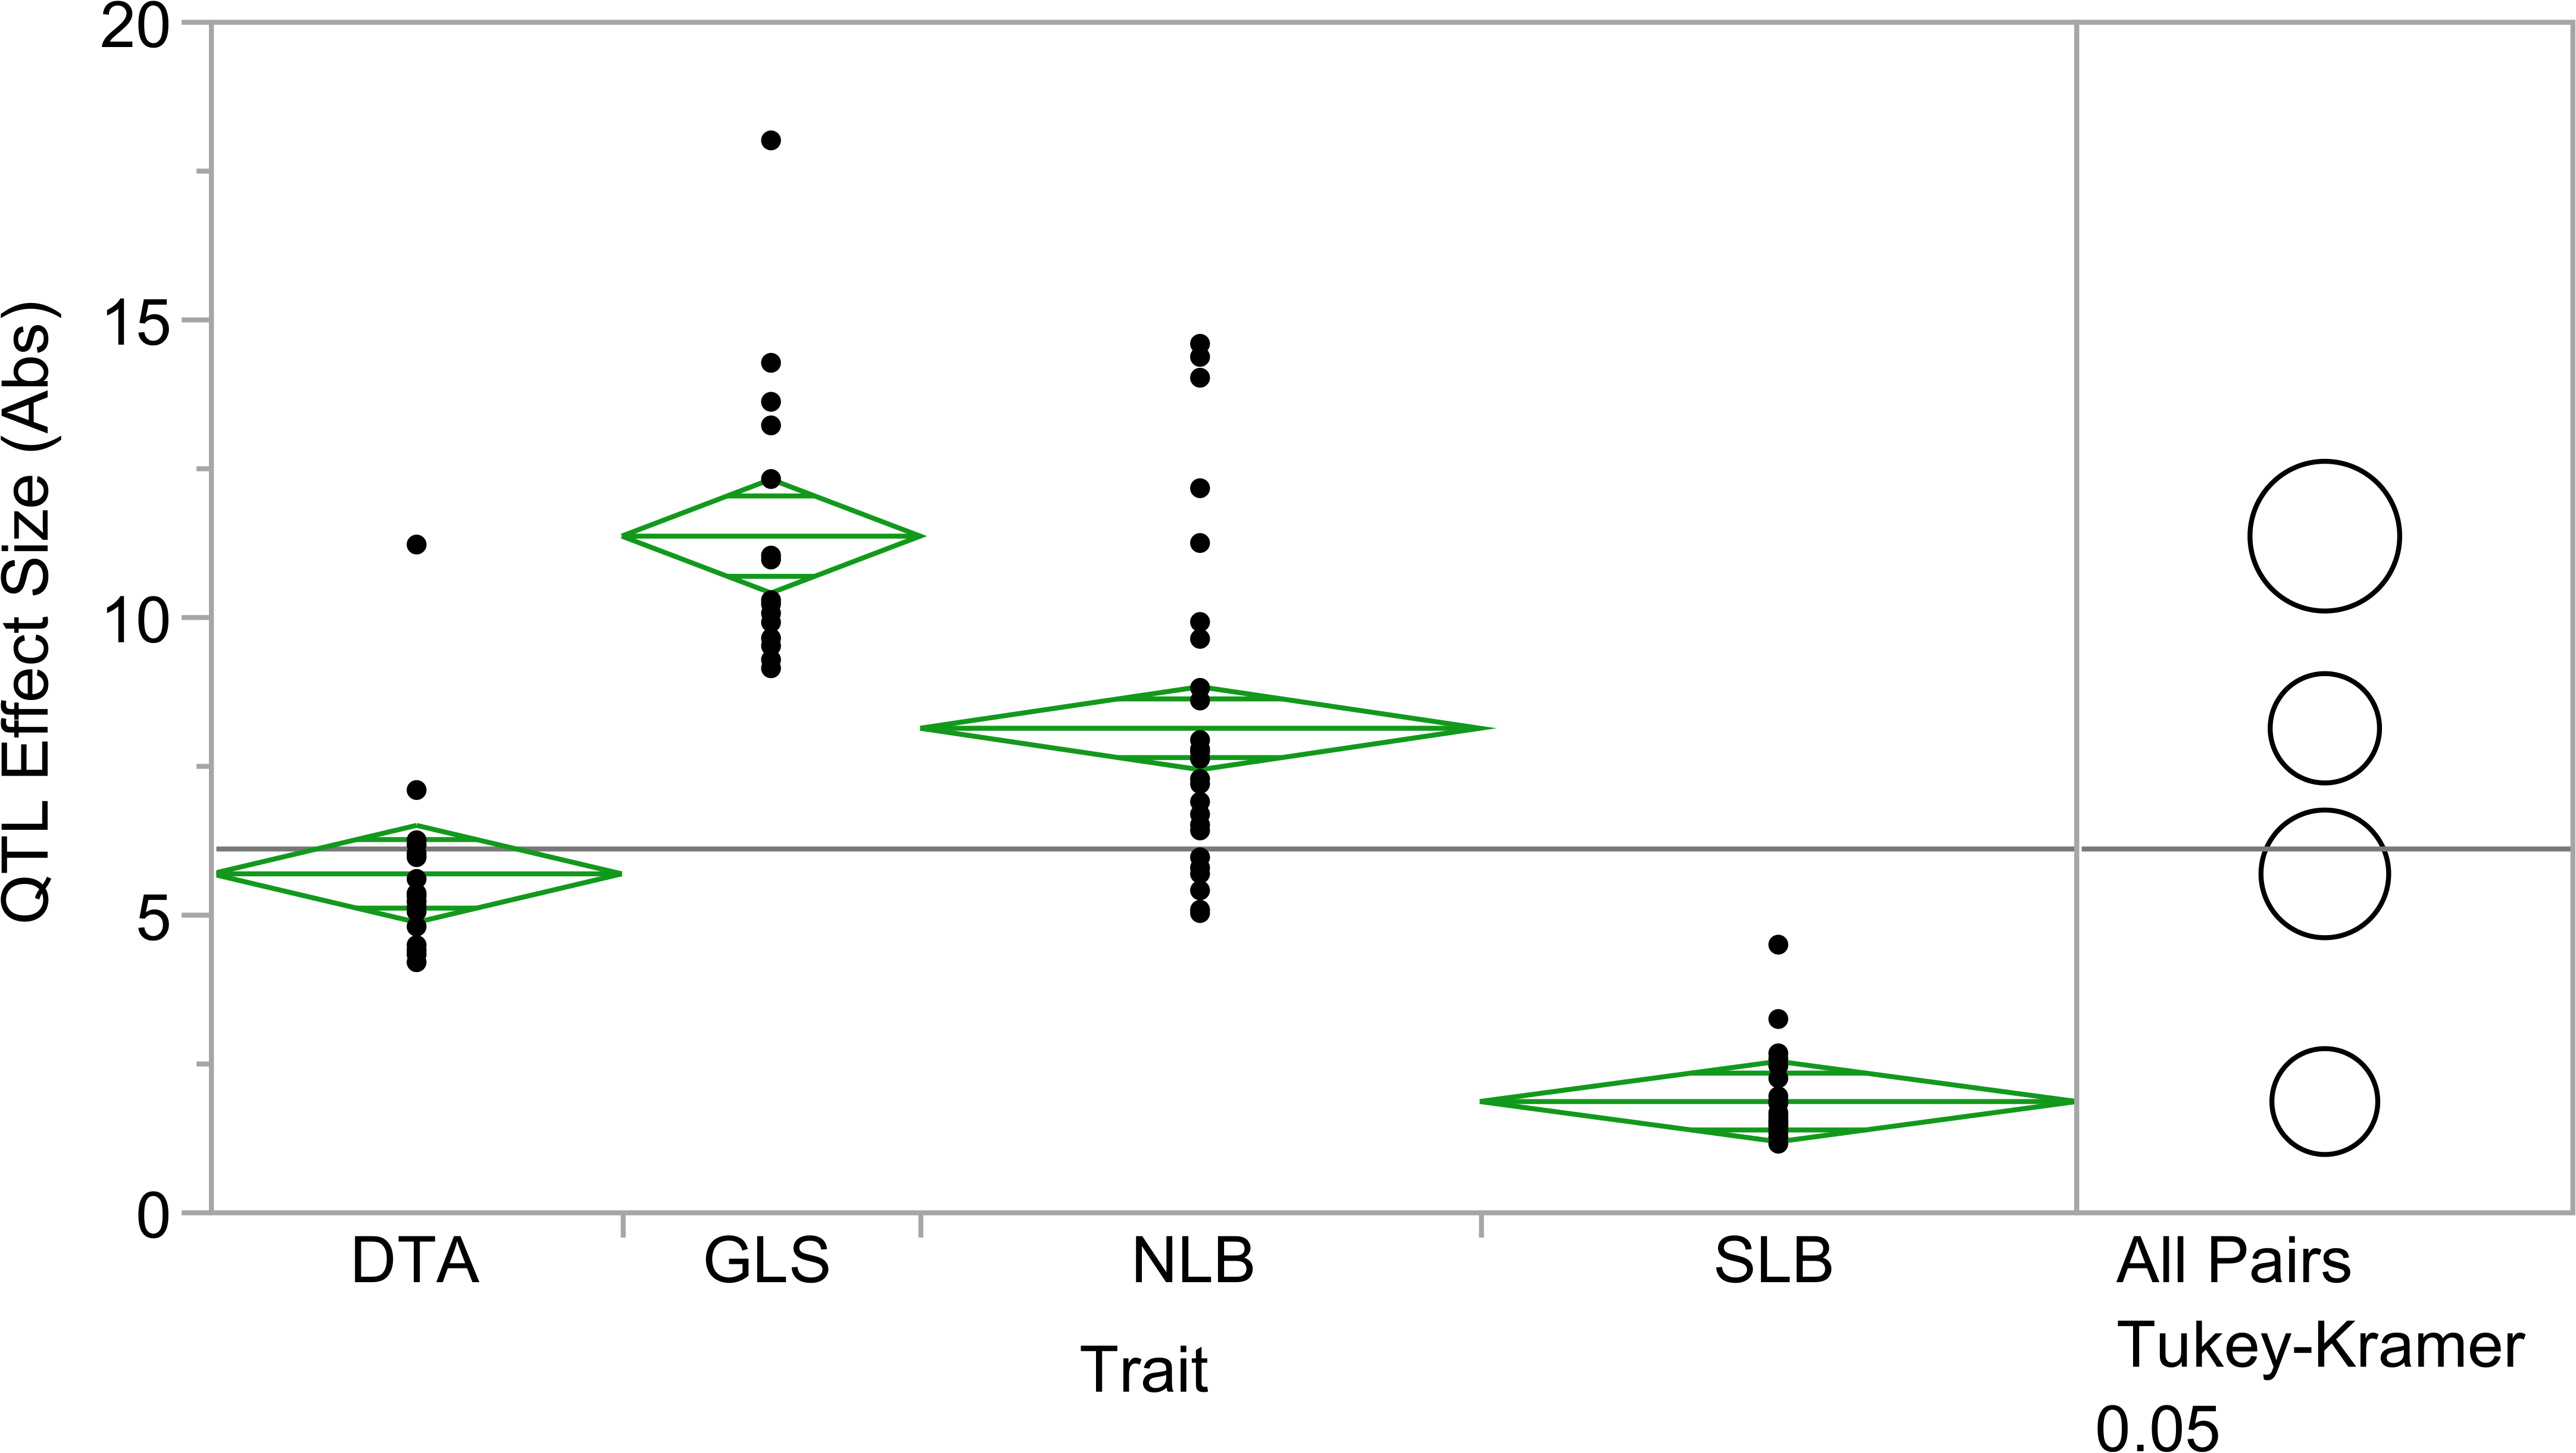 Absolute value of quantitative trait loci (QTL) effect size across three diseases and flowering time.